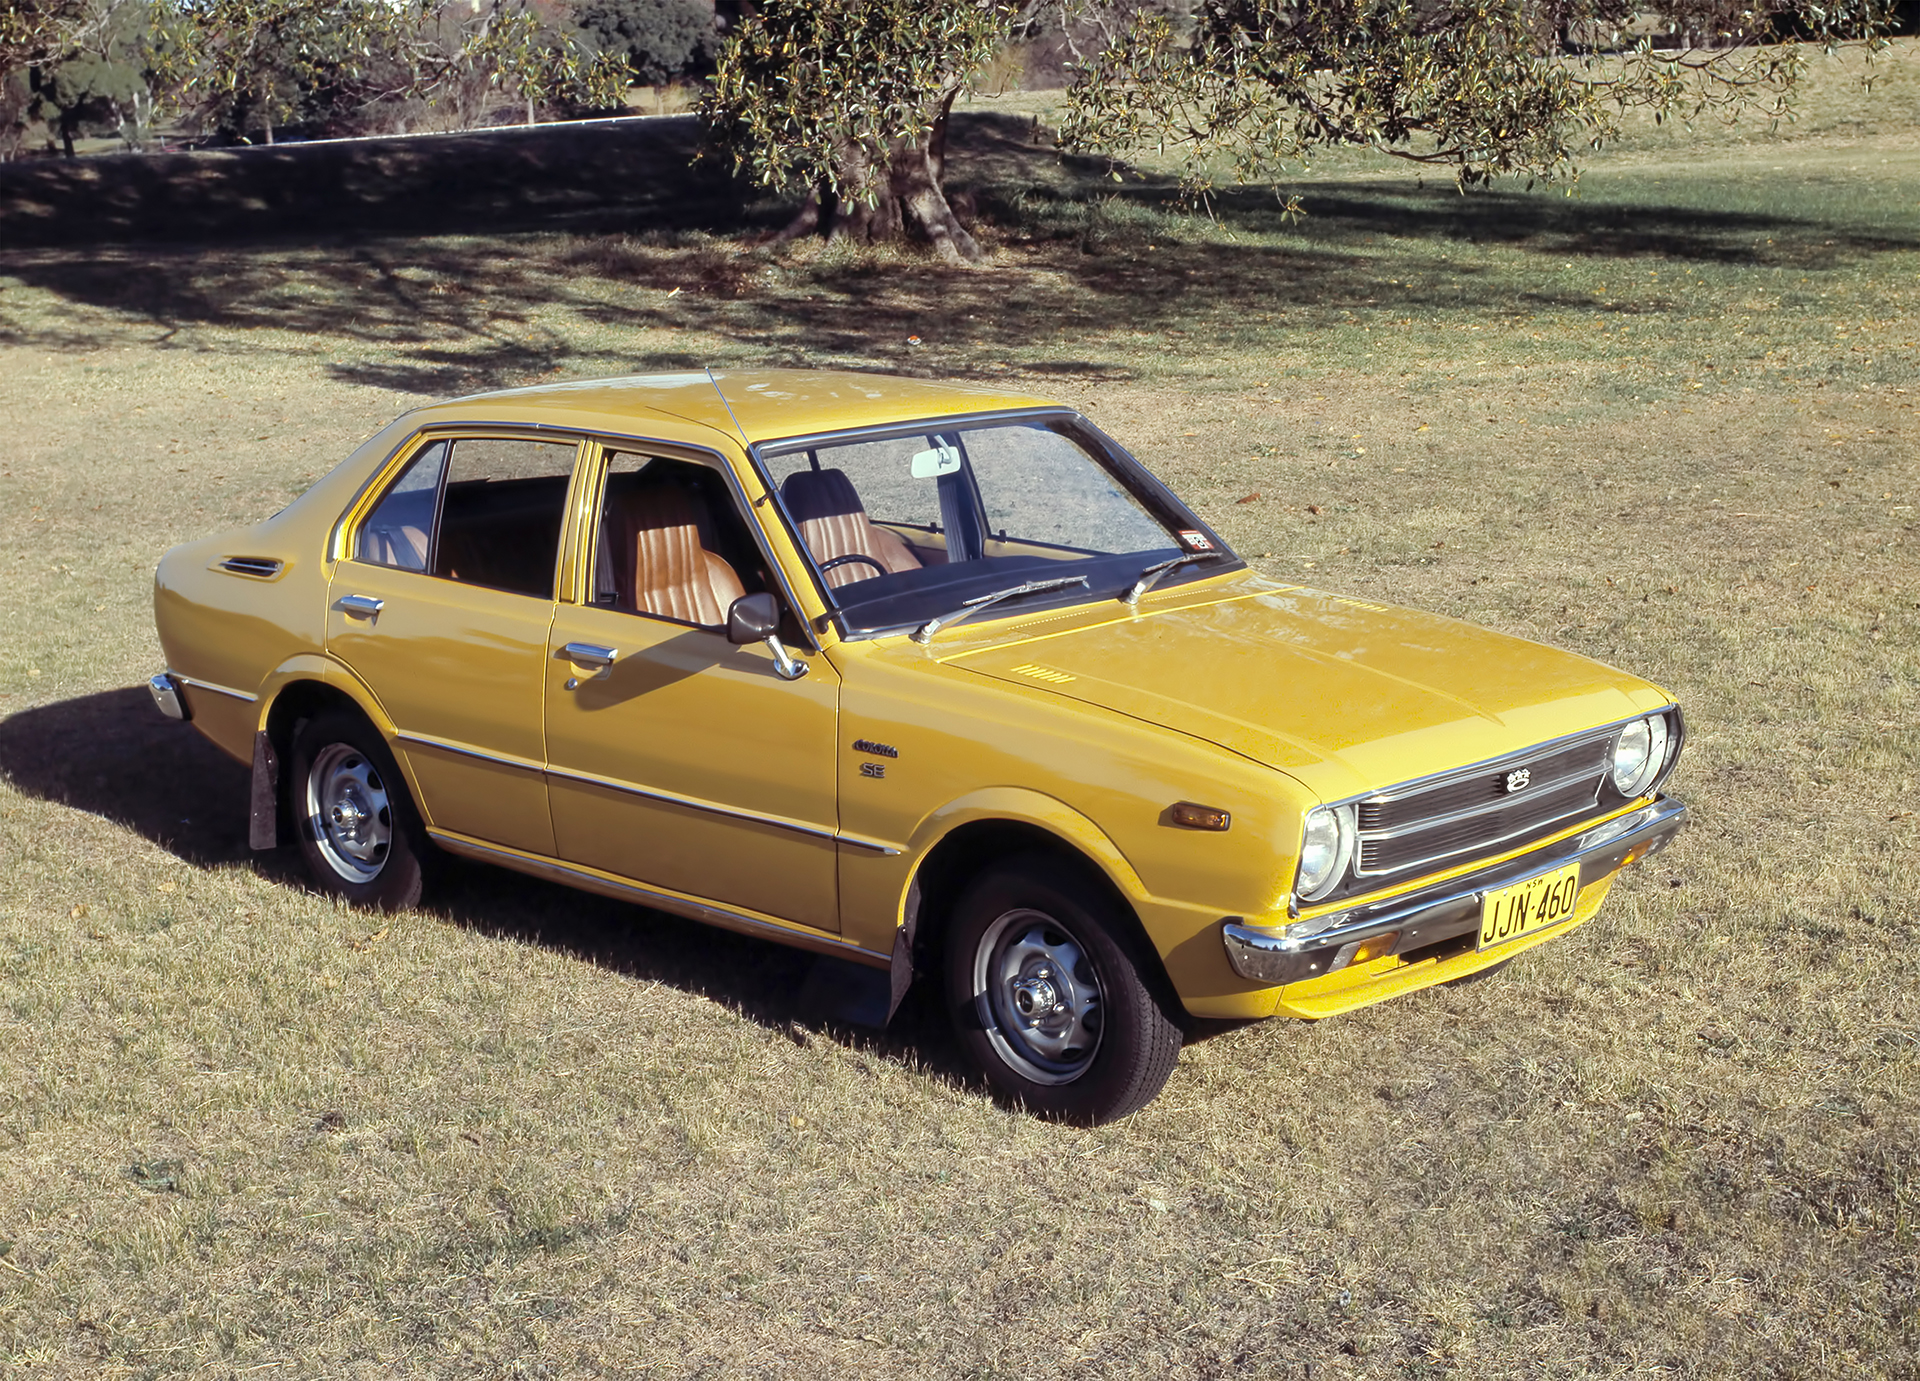 Europe - The 3rd Generation Corolla (1974 - 1979)